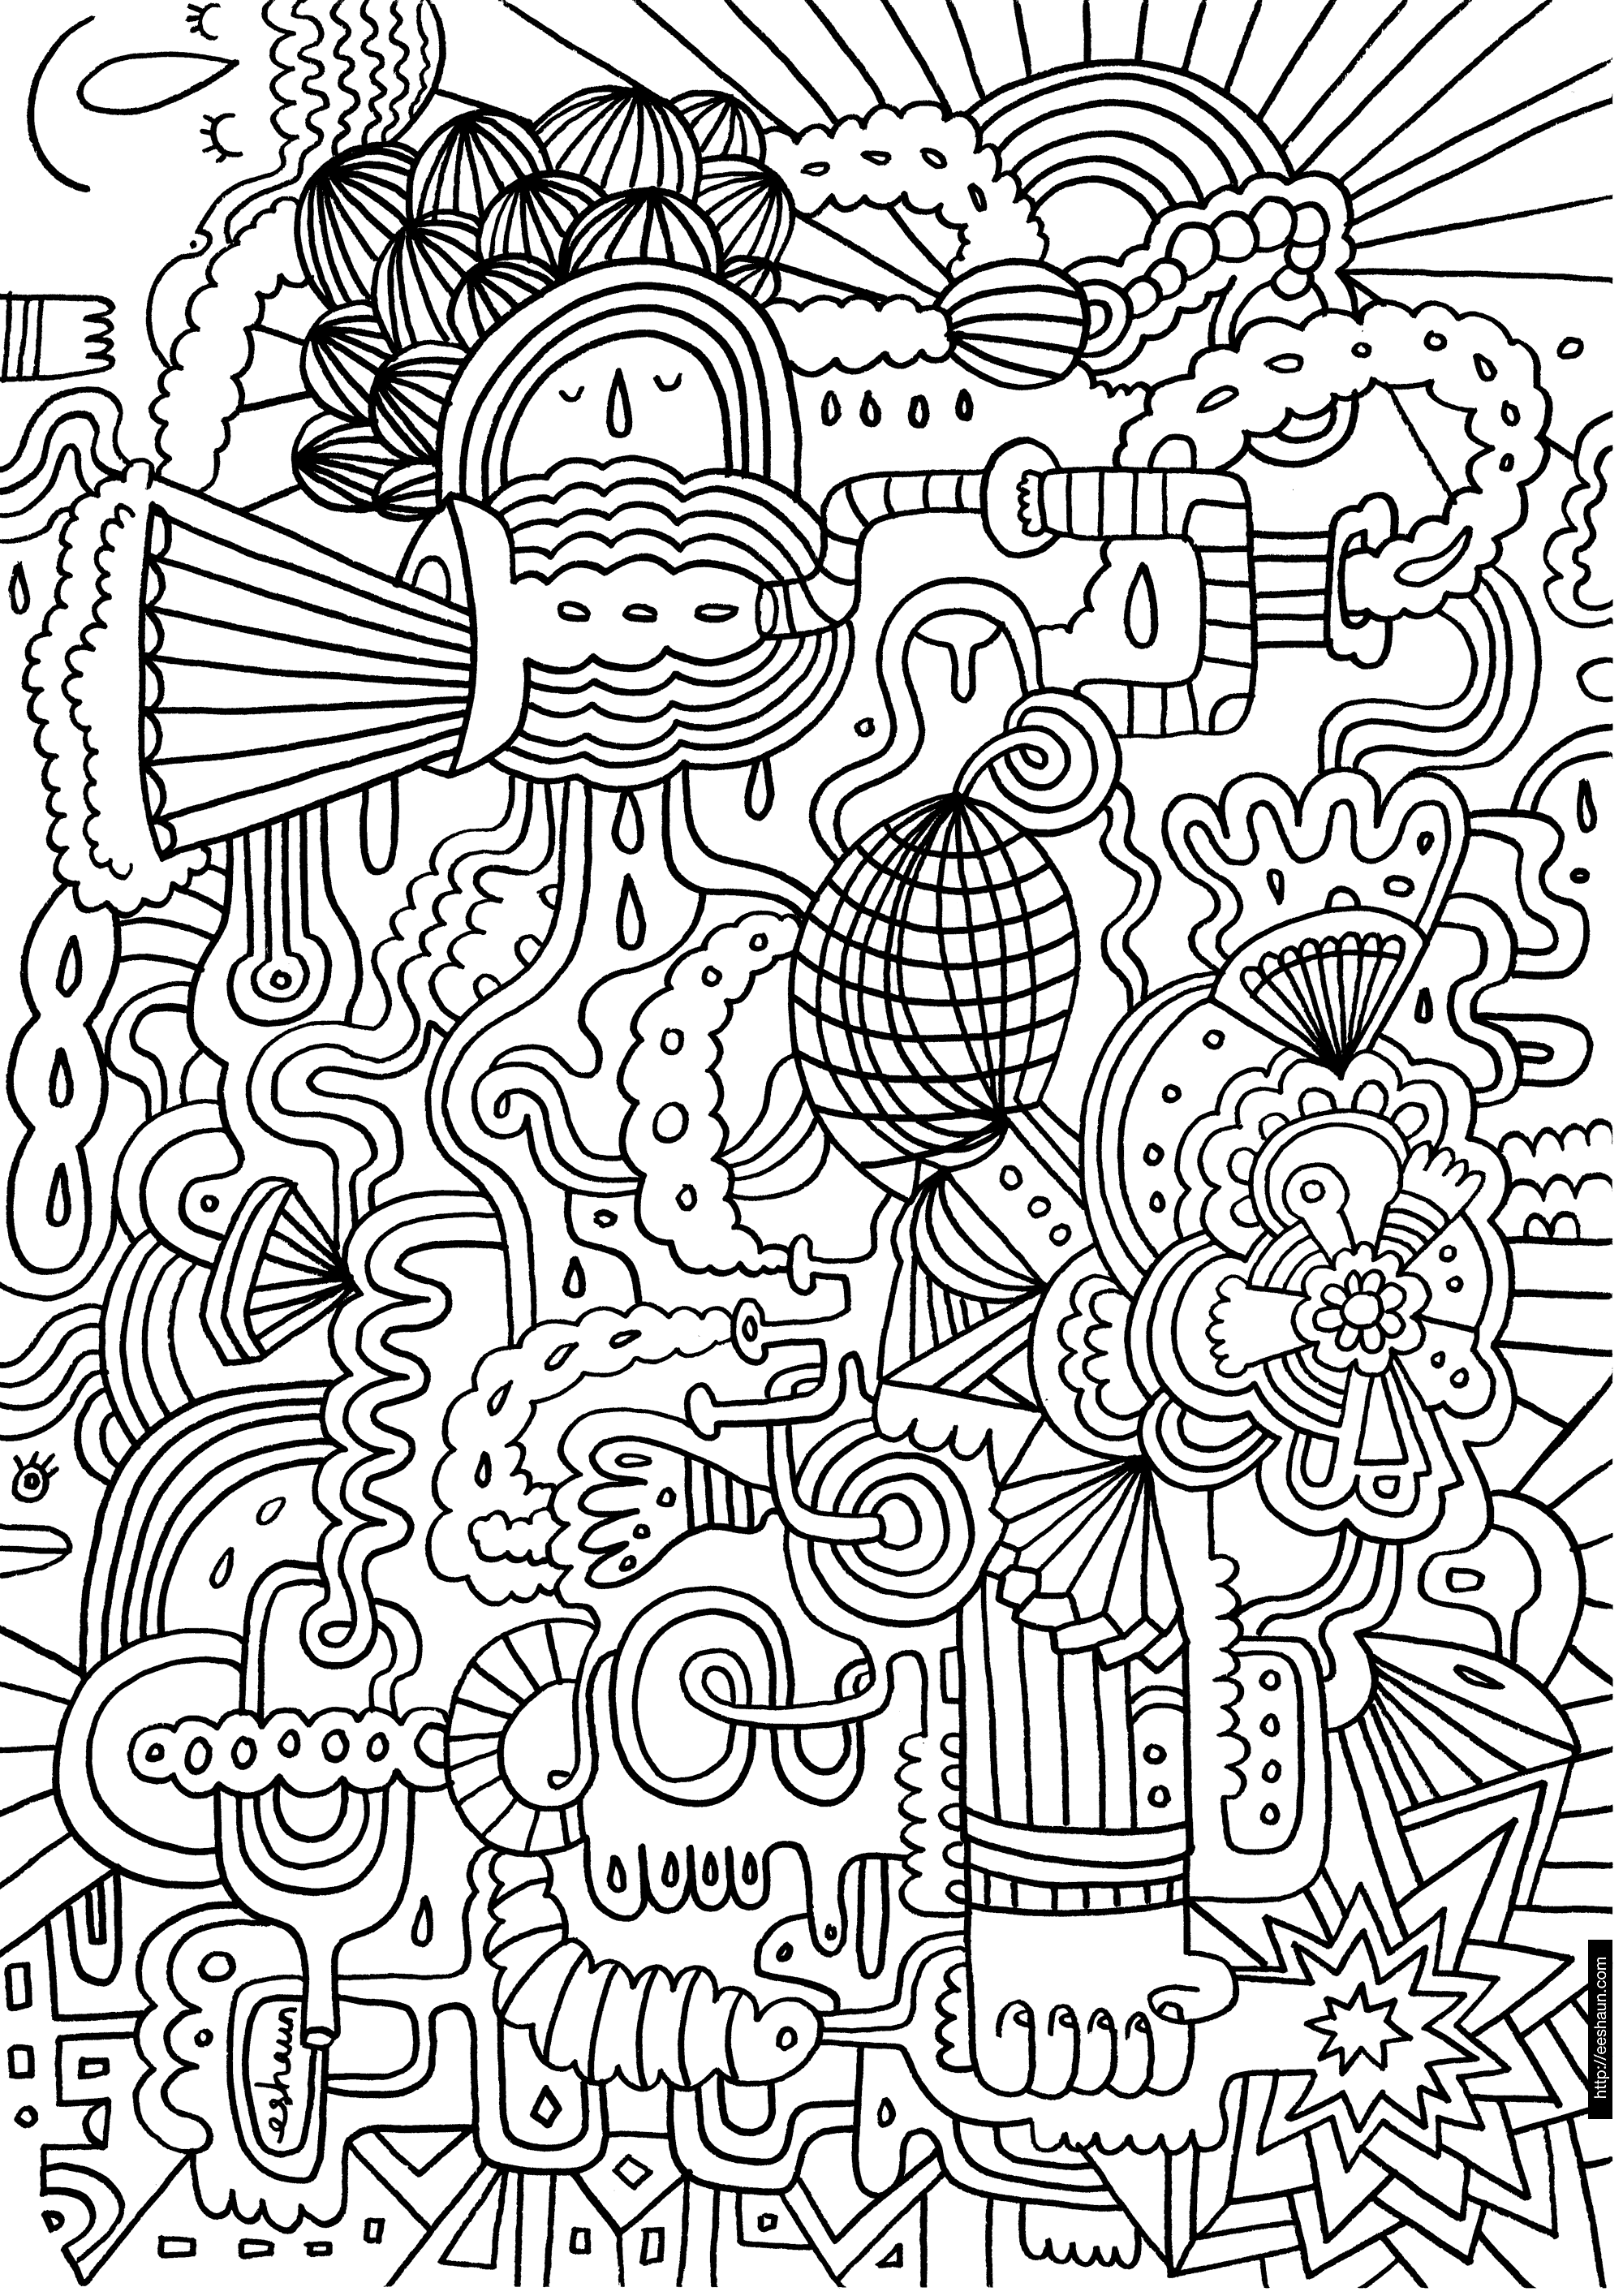 funky pipes coloring page | art docs, handouts, and printables ...